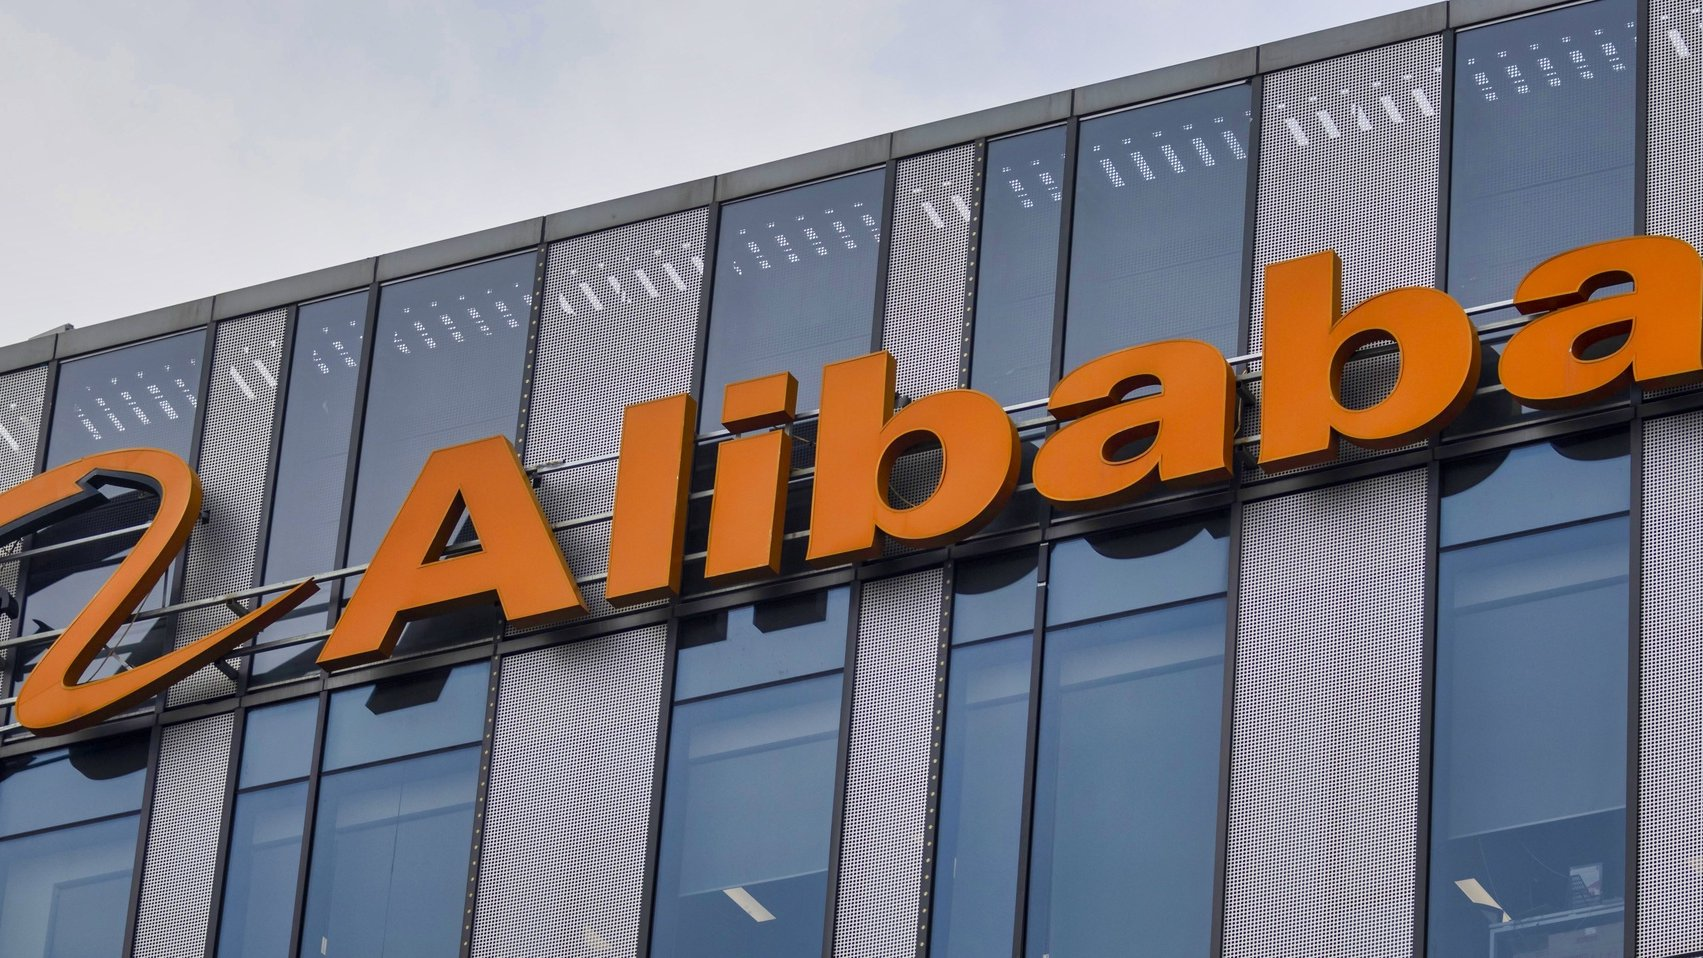 epa08798134 (FILE) - Alibaba logo is seen on their headquarters building in Shanghai, China, 21 July 2020 (reissued 04 November 2020). Alibaba is due to publish their 3rd quarter 2020 results on 05 November 2020.  EPA/ALEX PLAVEVSKI *** Local Caption *** 56227329